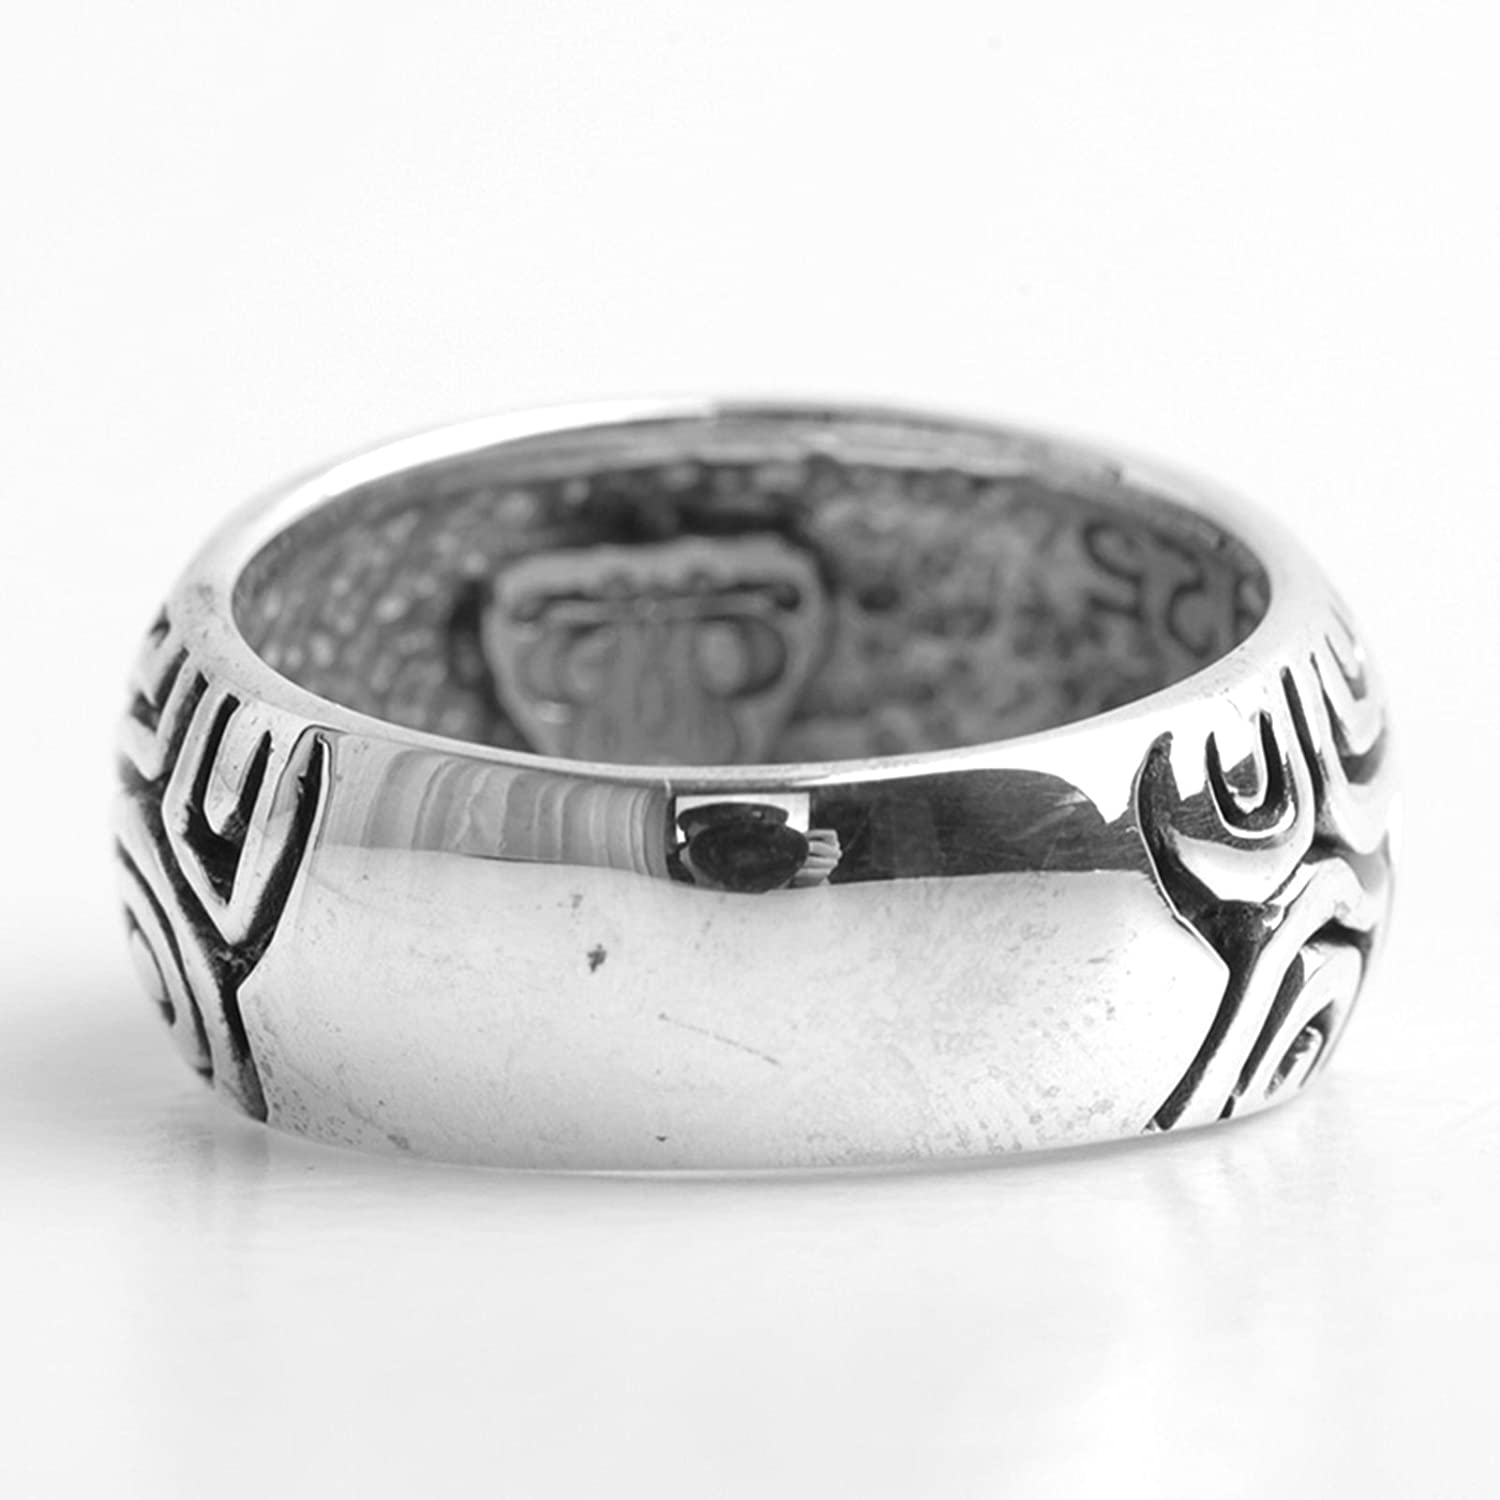 Epinki 925 Sterling Silver Punk Rock Vintage Gothic Personalized Totem Ring for Men Fashion Men Accessories